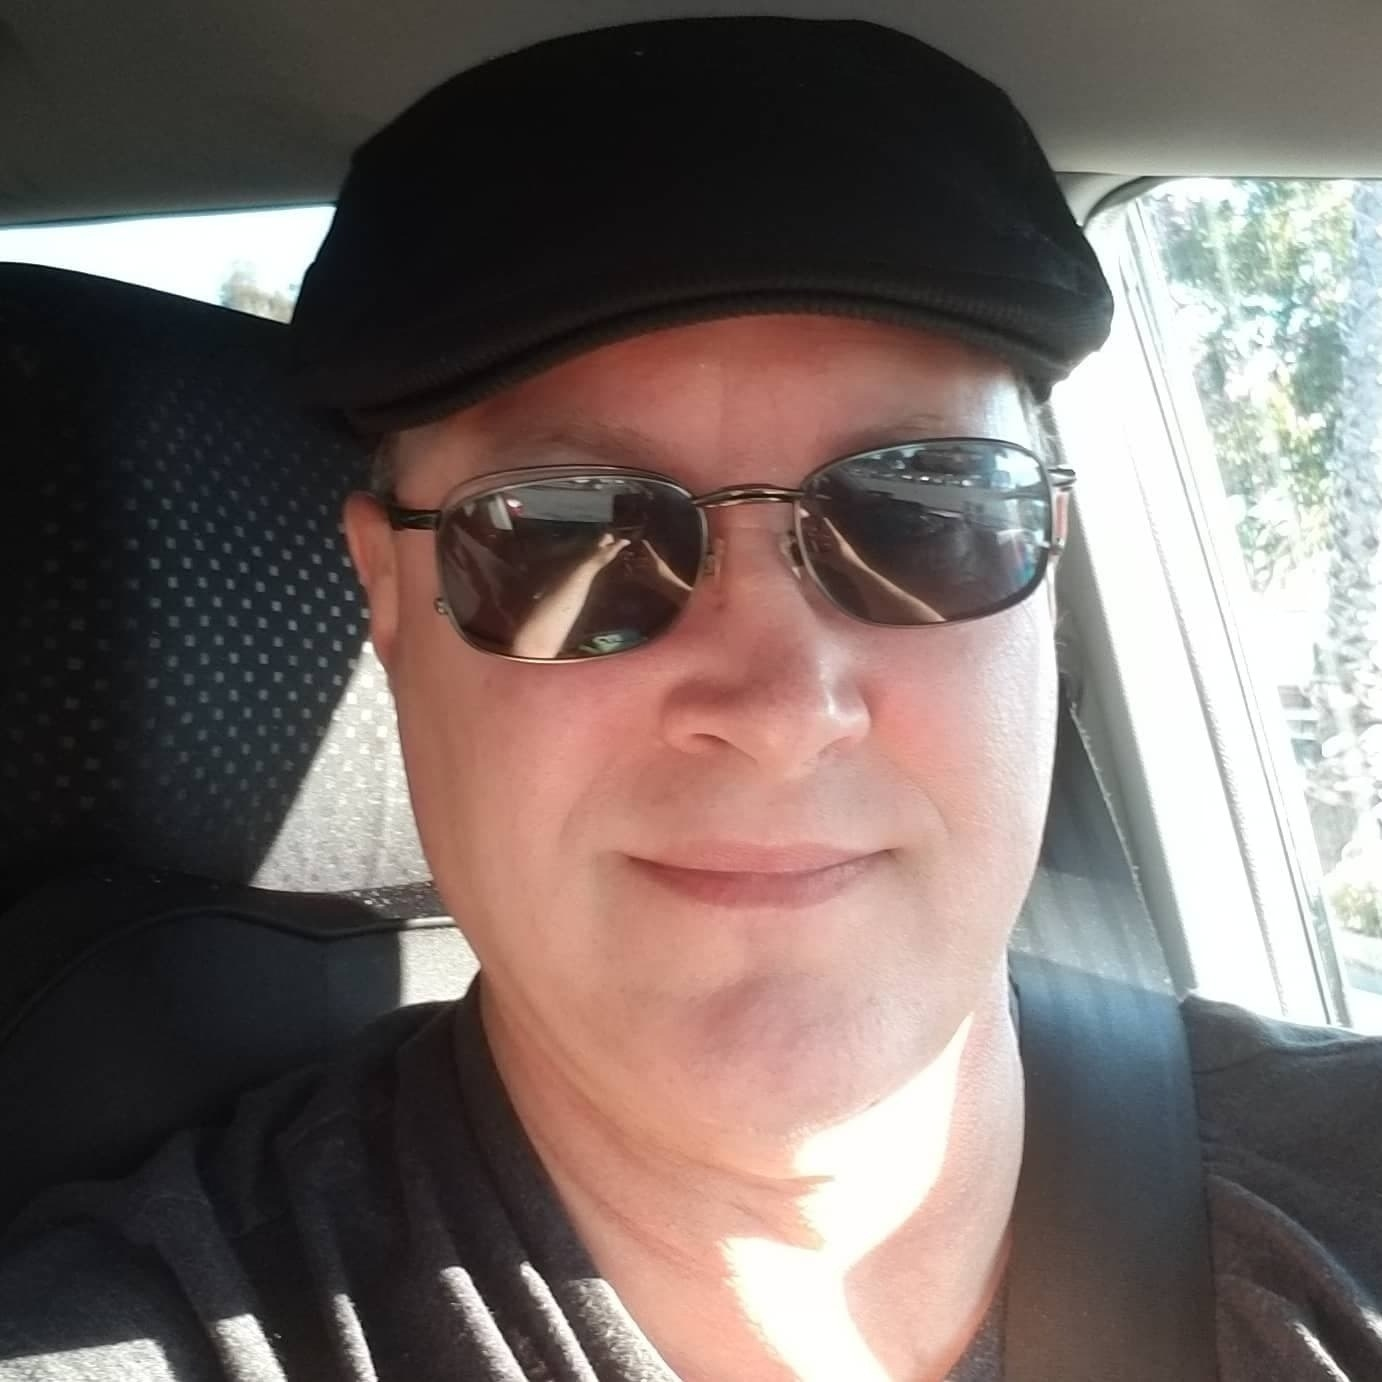 An Uber driver named Jeffrey Grant wears a black cap and sunglasses inside his car